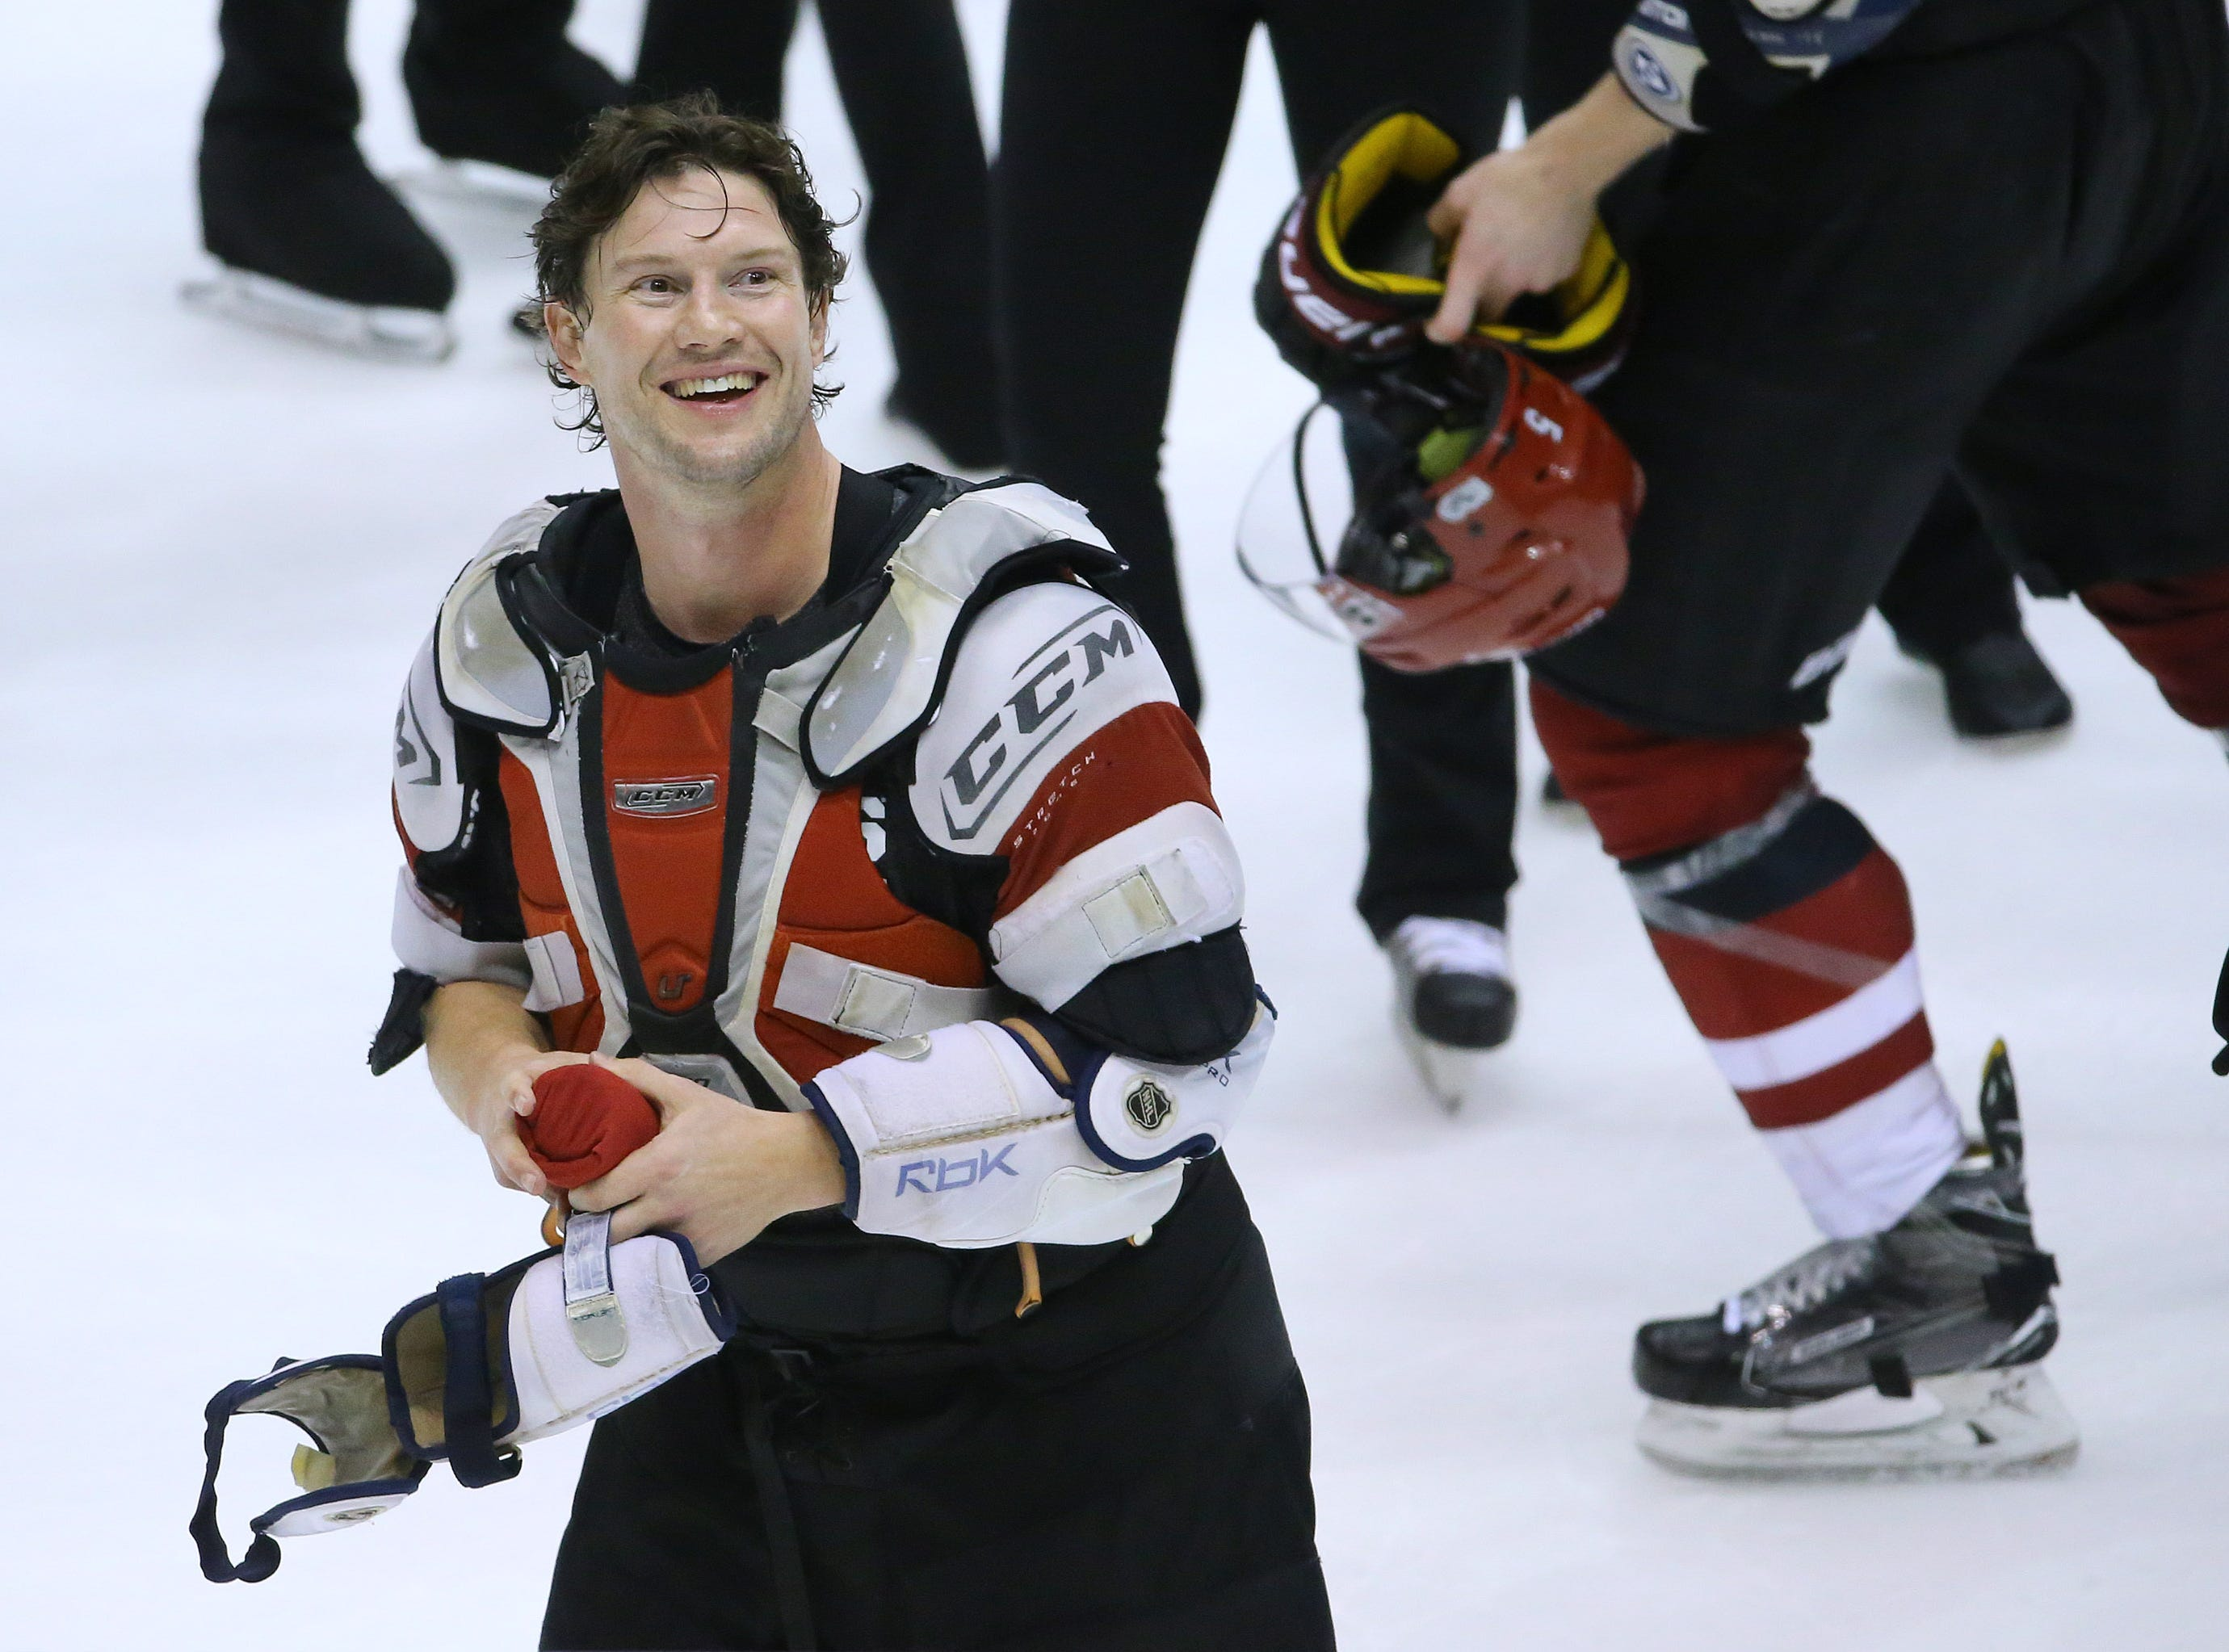 Shane Doan (Phoenix): Retired National Hockey League forward. Played 21 seasons and was the all-time goal scorer for the Winnipeg Jets and Phoenix Coyotes, after the franchise moved to Arizona in 1996.